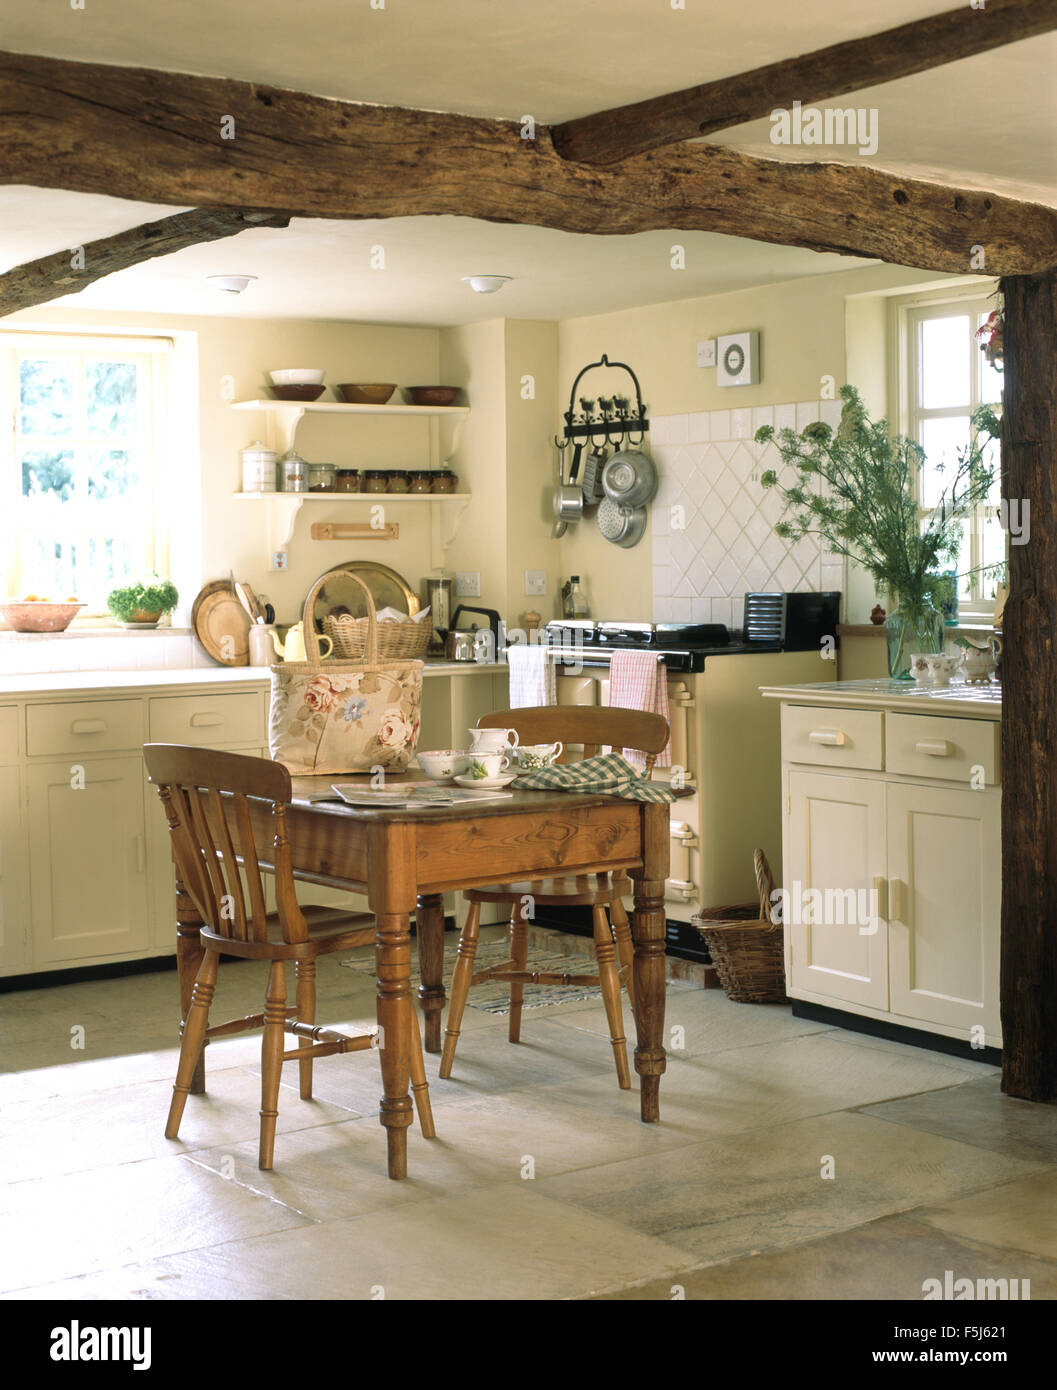 Stock Photo   Vintage Pine Dining Table And Chairs In A Cream Cottage  Kitchen With A Cream Range Oven And Rustic Wooden Ceiling Beams